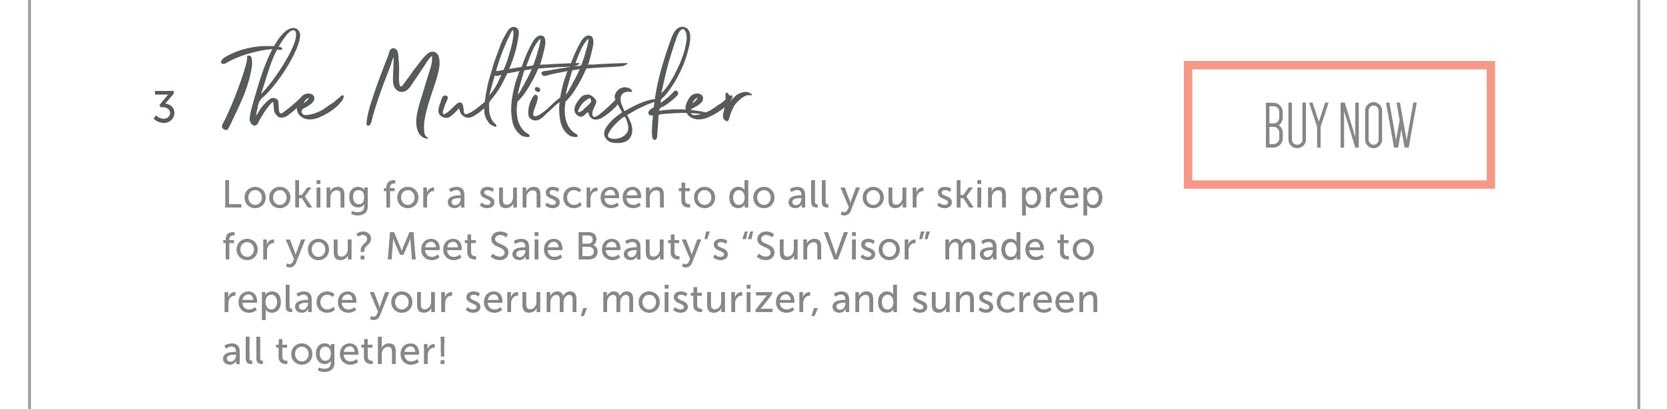 """The Multitasker Looking for a sunscreen to do all your skin prep for you? Meet Saie Beauty's """"SunVisor"""" made to replace your serum, moisturizer, and sunscreen all together!"""